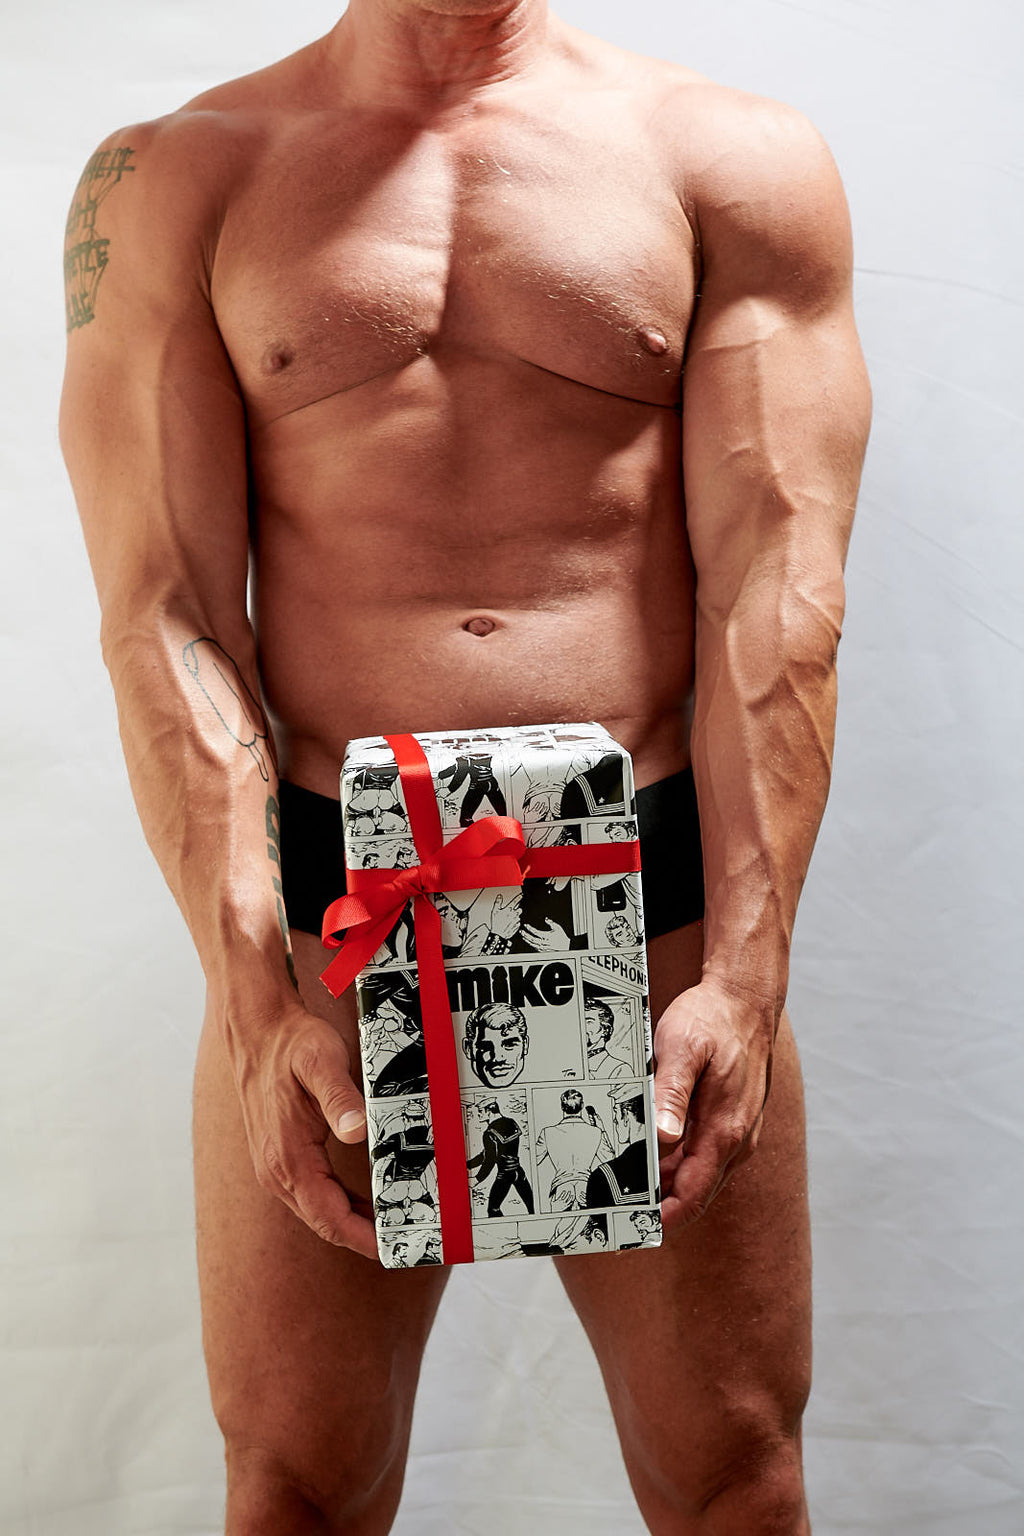 Tom of Finland Wrapping Paper: MIKE